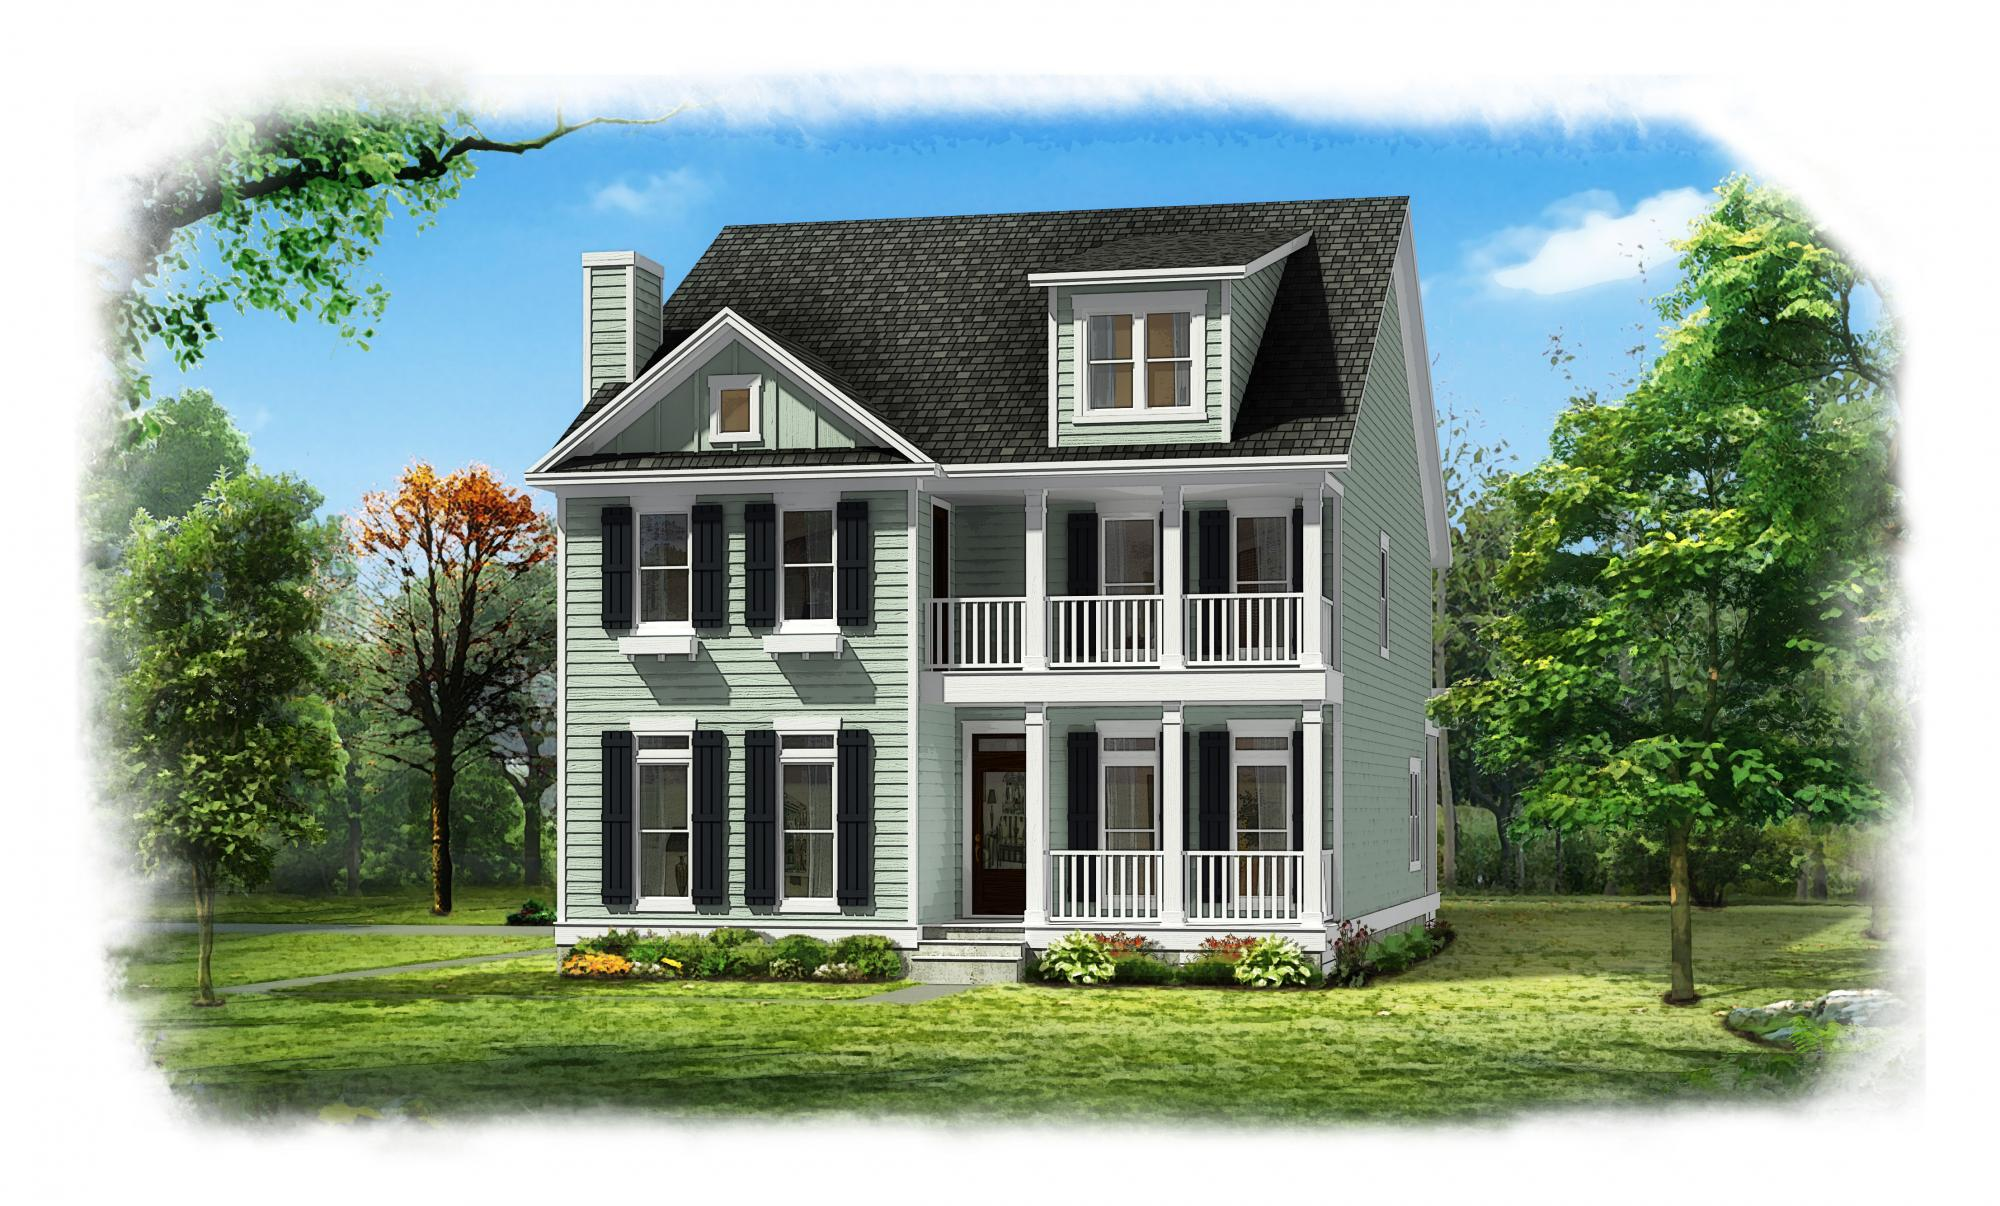 Sapelo custom homes savannah ga konter quality homes dailygadgetfo Gallery